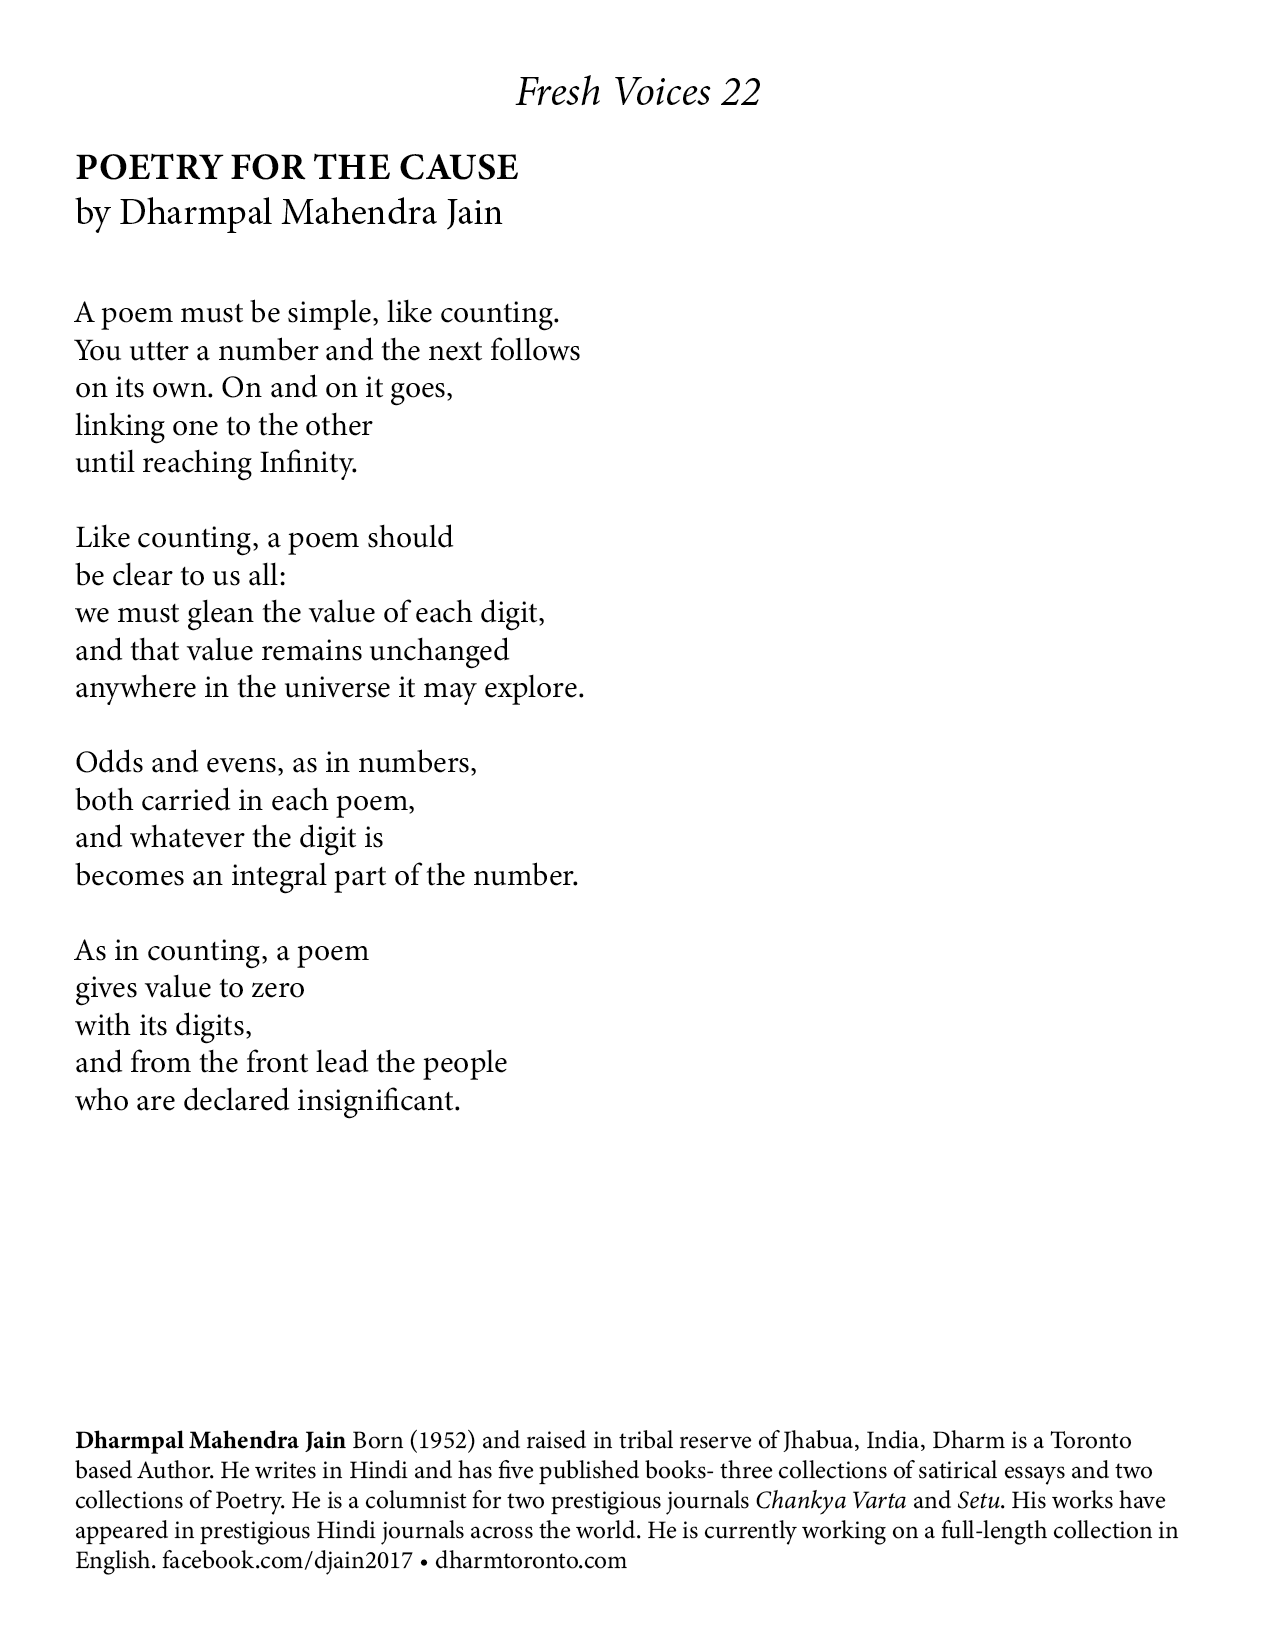 Dharmpal Mahendra Jain POETRY FOR THE CAUSE A poem must be simple, like counting. You utter a number and the next follows on its own. On and on it goes, linking one to the other until reaching Infinity. Like counting, a poem should be clear to us all: we must glean the value of each digit, and that value remains unchanged anywhere in the universe it may explore. Odds and evens, as in numbers, both carried in each poem, and whatever the digit is becomes an integral part of the number. As in counting, a poem gives value to zero with its digits, and from the front lead the people who are declared insignificant. ________________________________________________________  Bio Dharmpal Mahendra Jain Born (1952) and raised in tribal reserve of Jhabua, India, Dharm is a Toronto based Author. He writes in Hindi and has five published books- three collections of satirical essays and two collections of Poetry. He is a columnist for two prestigious journals Chankya Varta and Setu. His works have appeared in prestigious Hindi journals across the world. He is currently working on a full-length collection in English. FB: https://www.facebook.com/djain2017 Web page – www.dharmtoronto.com